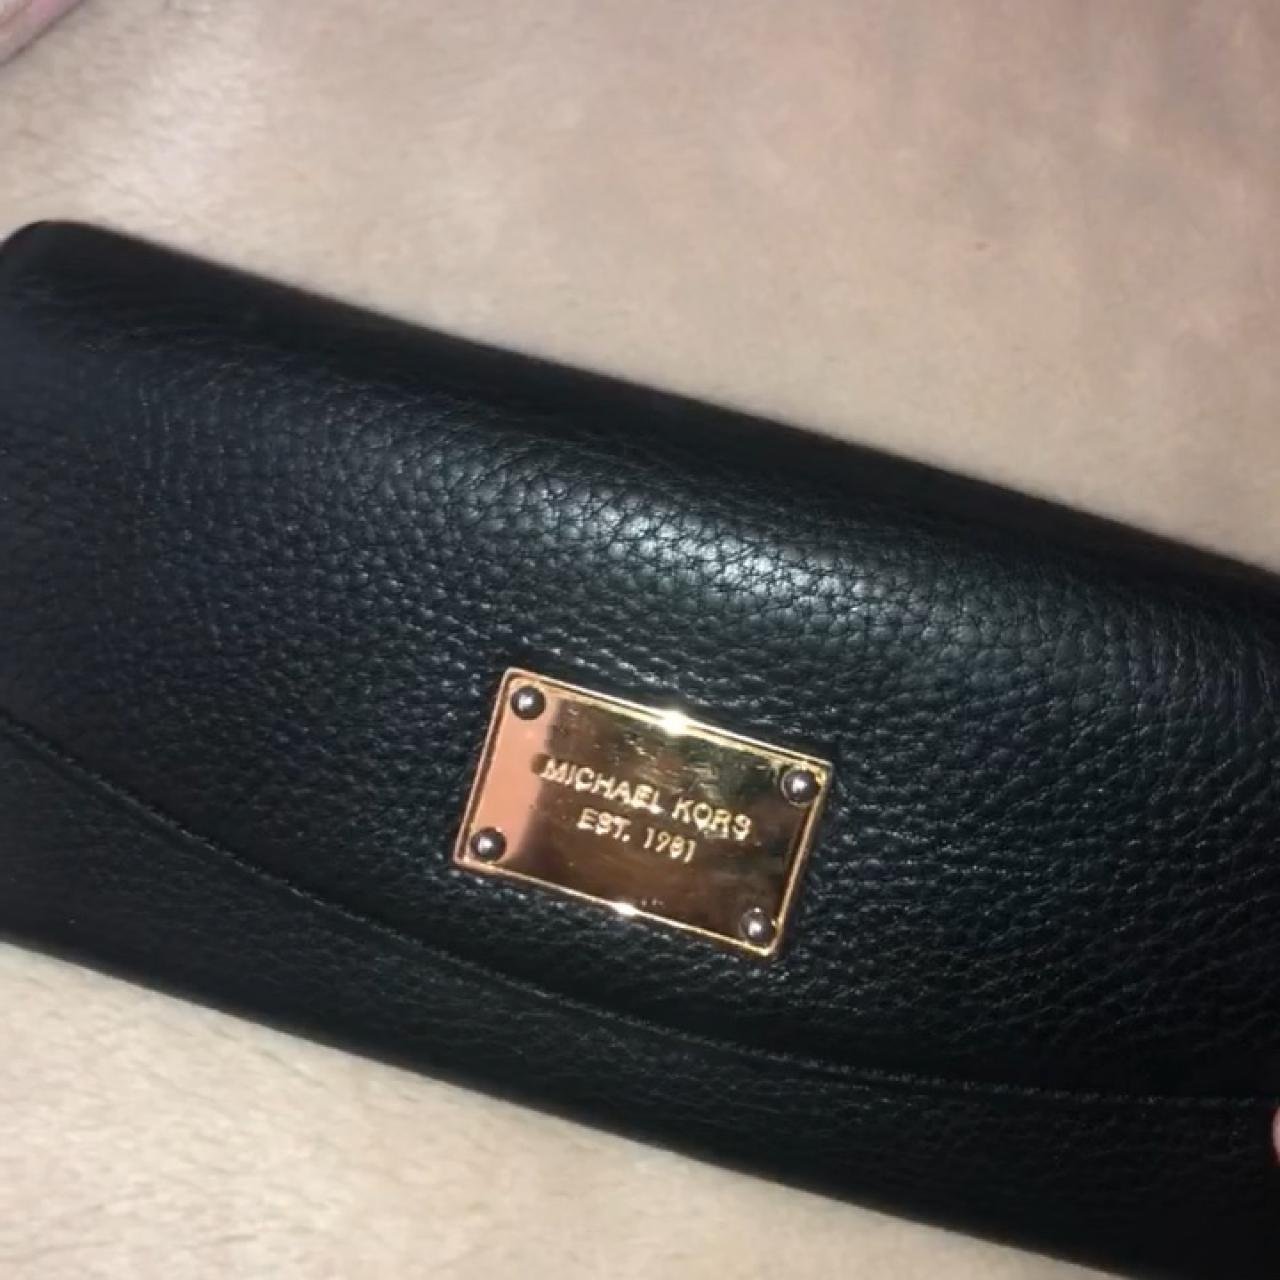 e23ce07e8a67 Michael Kors Wallet Pm before buying Used